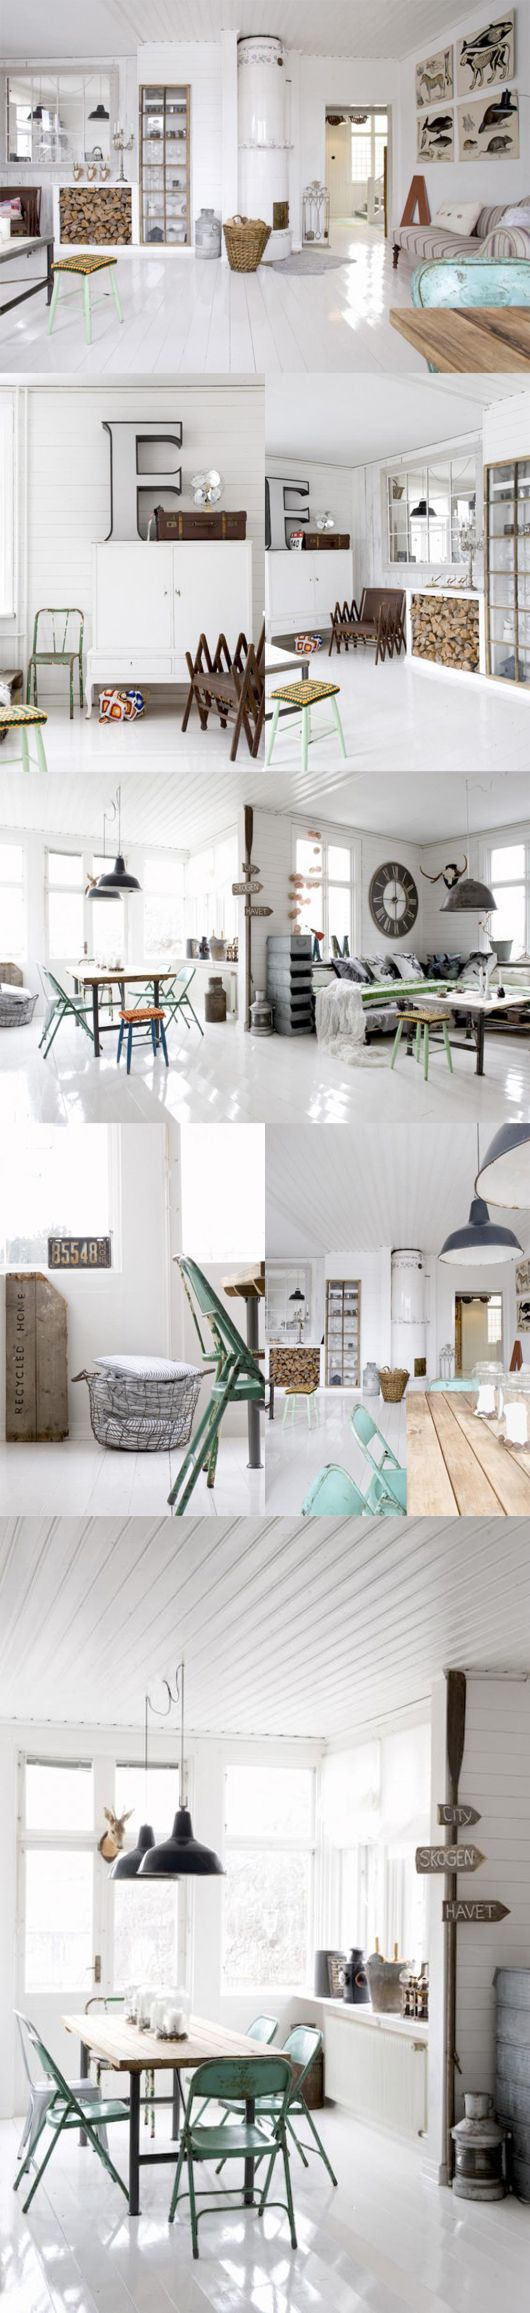 240 best Scandinavian Interiors images on Pinterest | Arquitetura ...